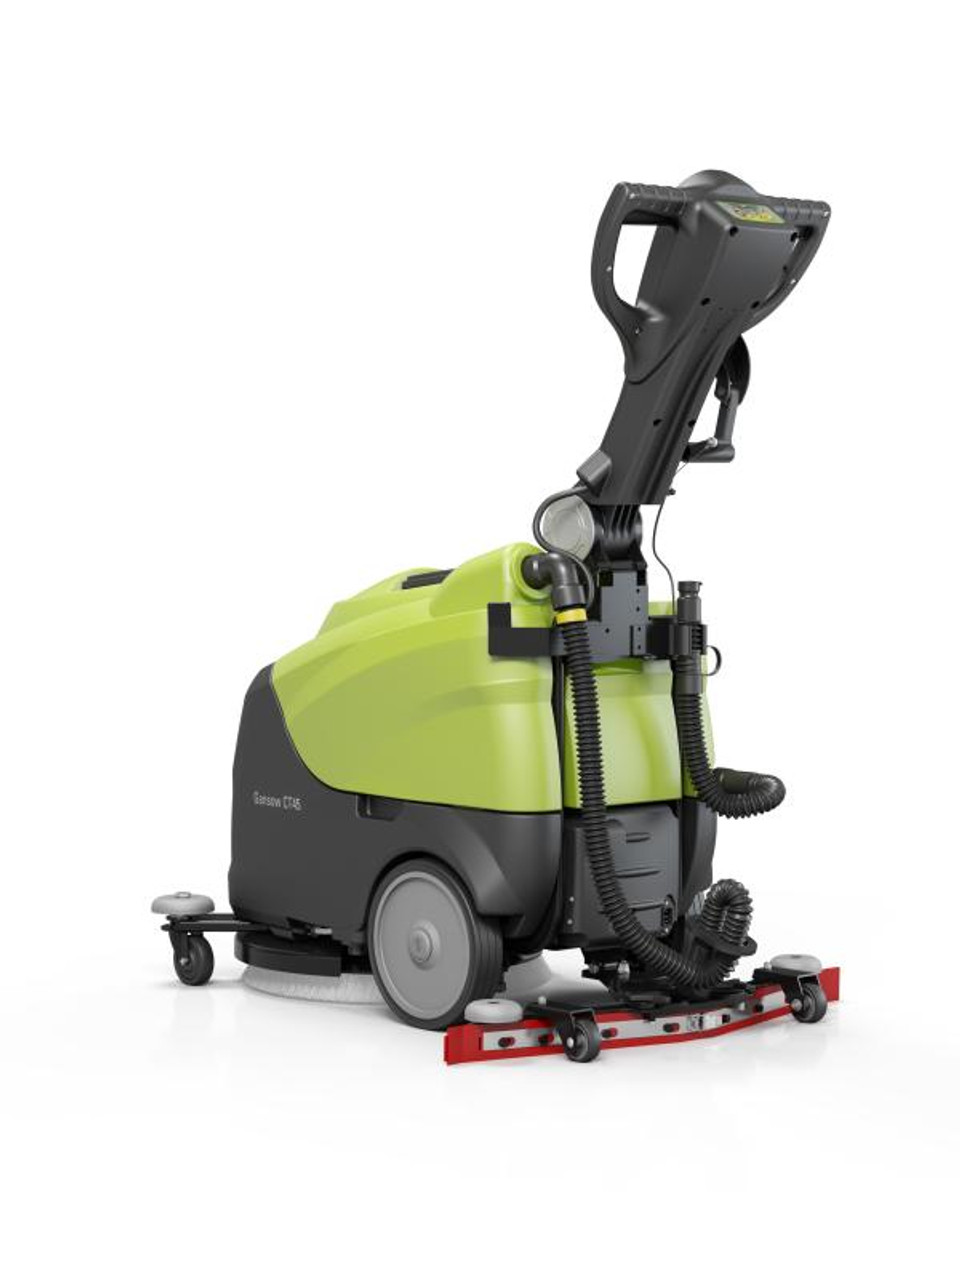 The IPC Eagle CT45 Autoscrubber's size makes it ideal for many situations.